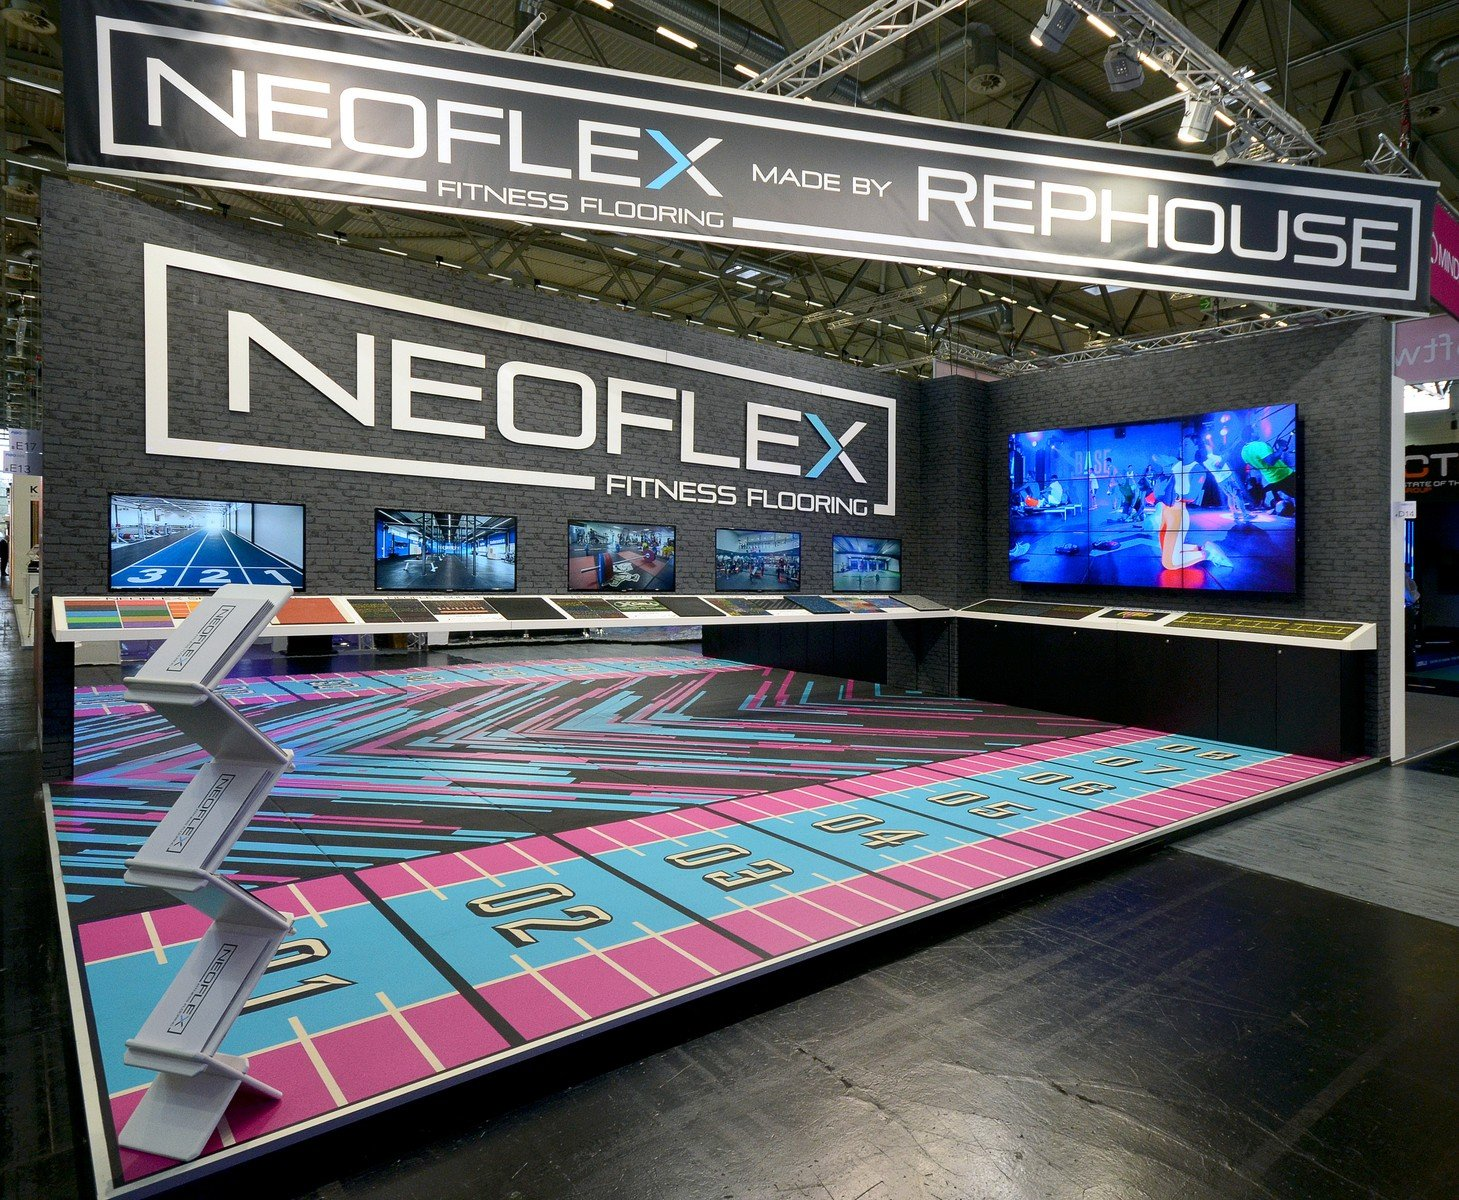 Rephouse Neoflex Fitness Floring Messestand Fibo 2018 3